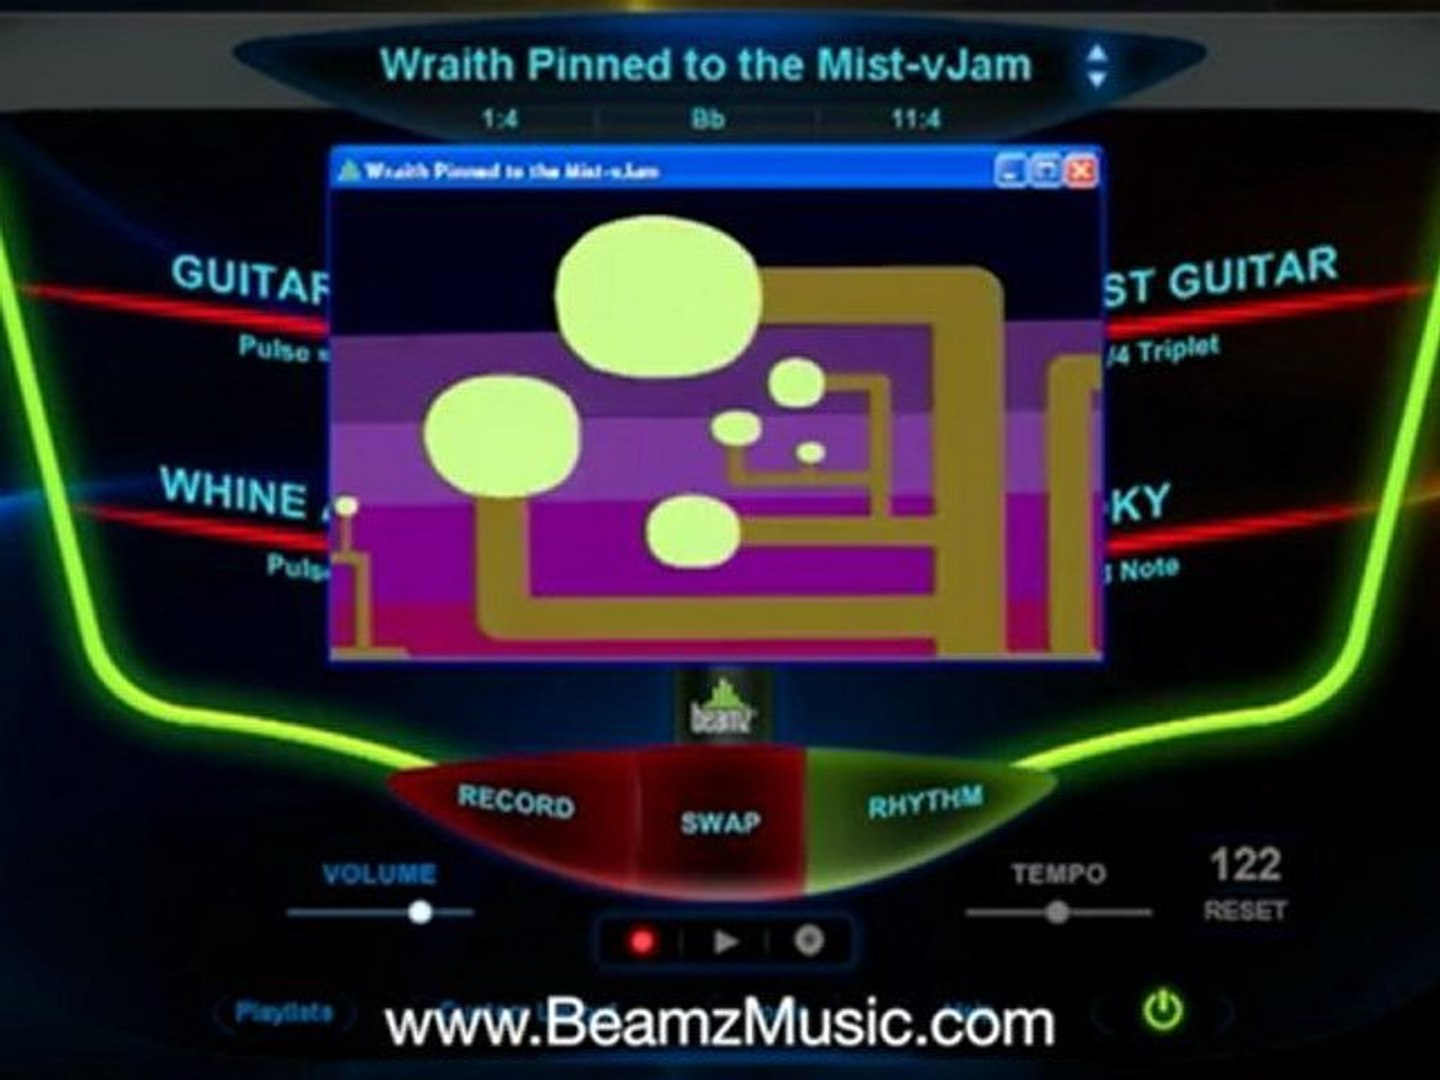 5 Beamz Music - Video Jam Songs Beamz Music Library PLAY A MUSICAL INSTRUMENT? INTERACT W MUSIC VIDE